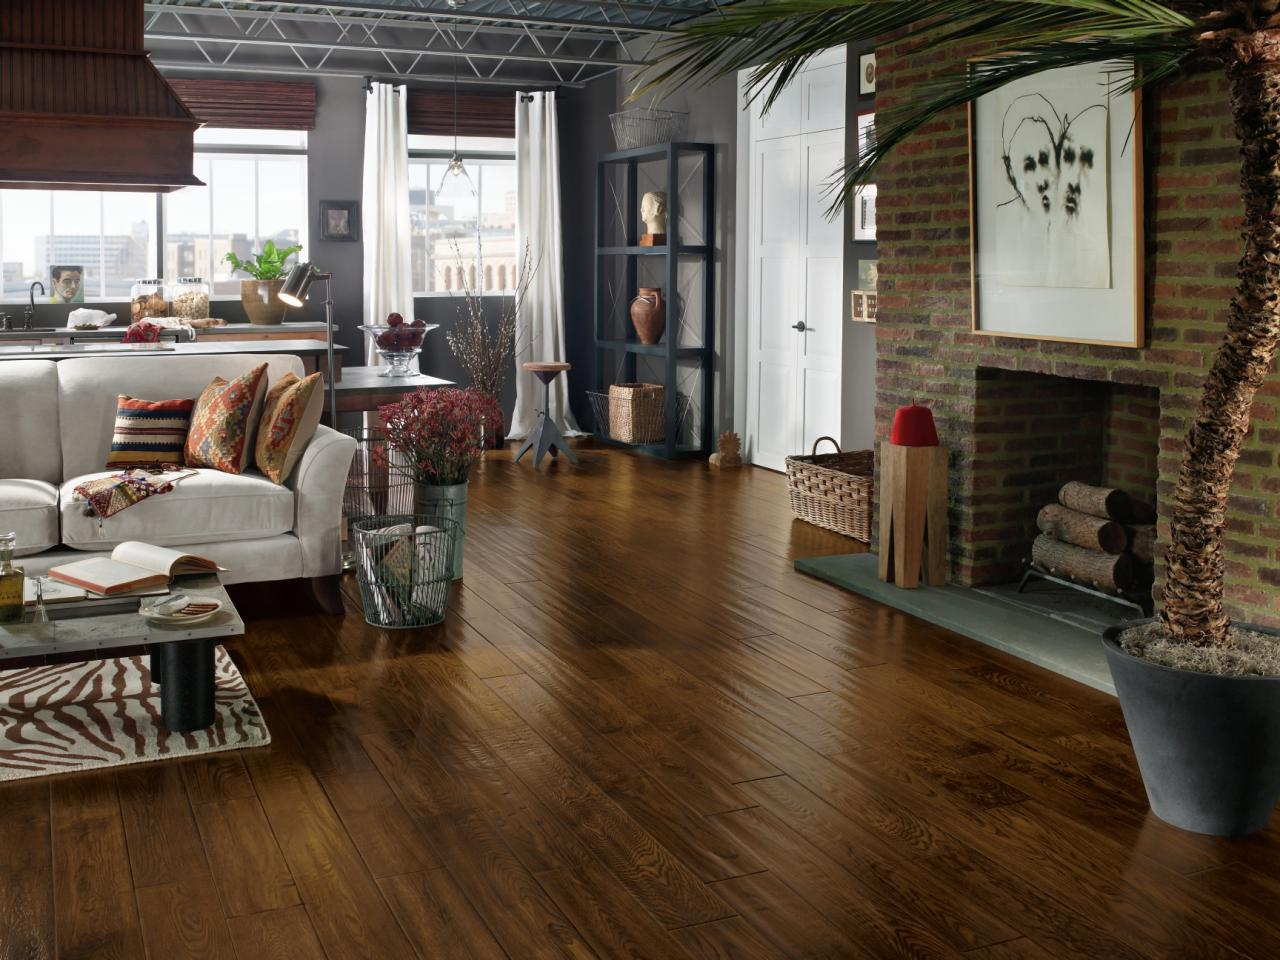 Pros And Cons Of Laminate Wood Flooring engineered hardwood flooring pros and cons – meze blog